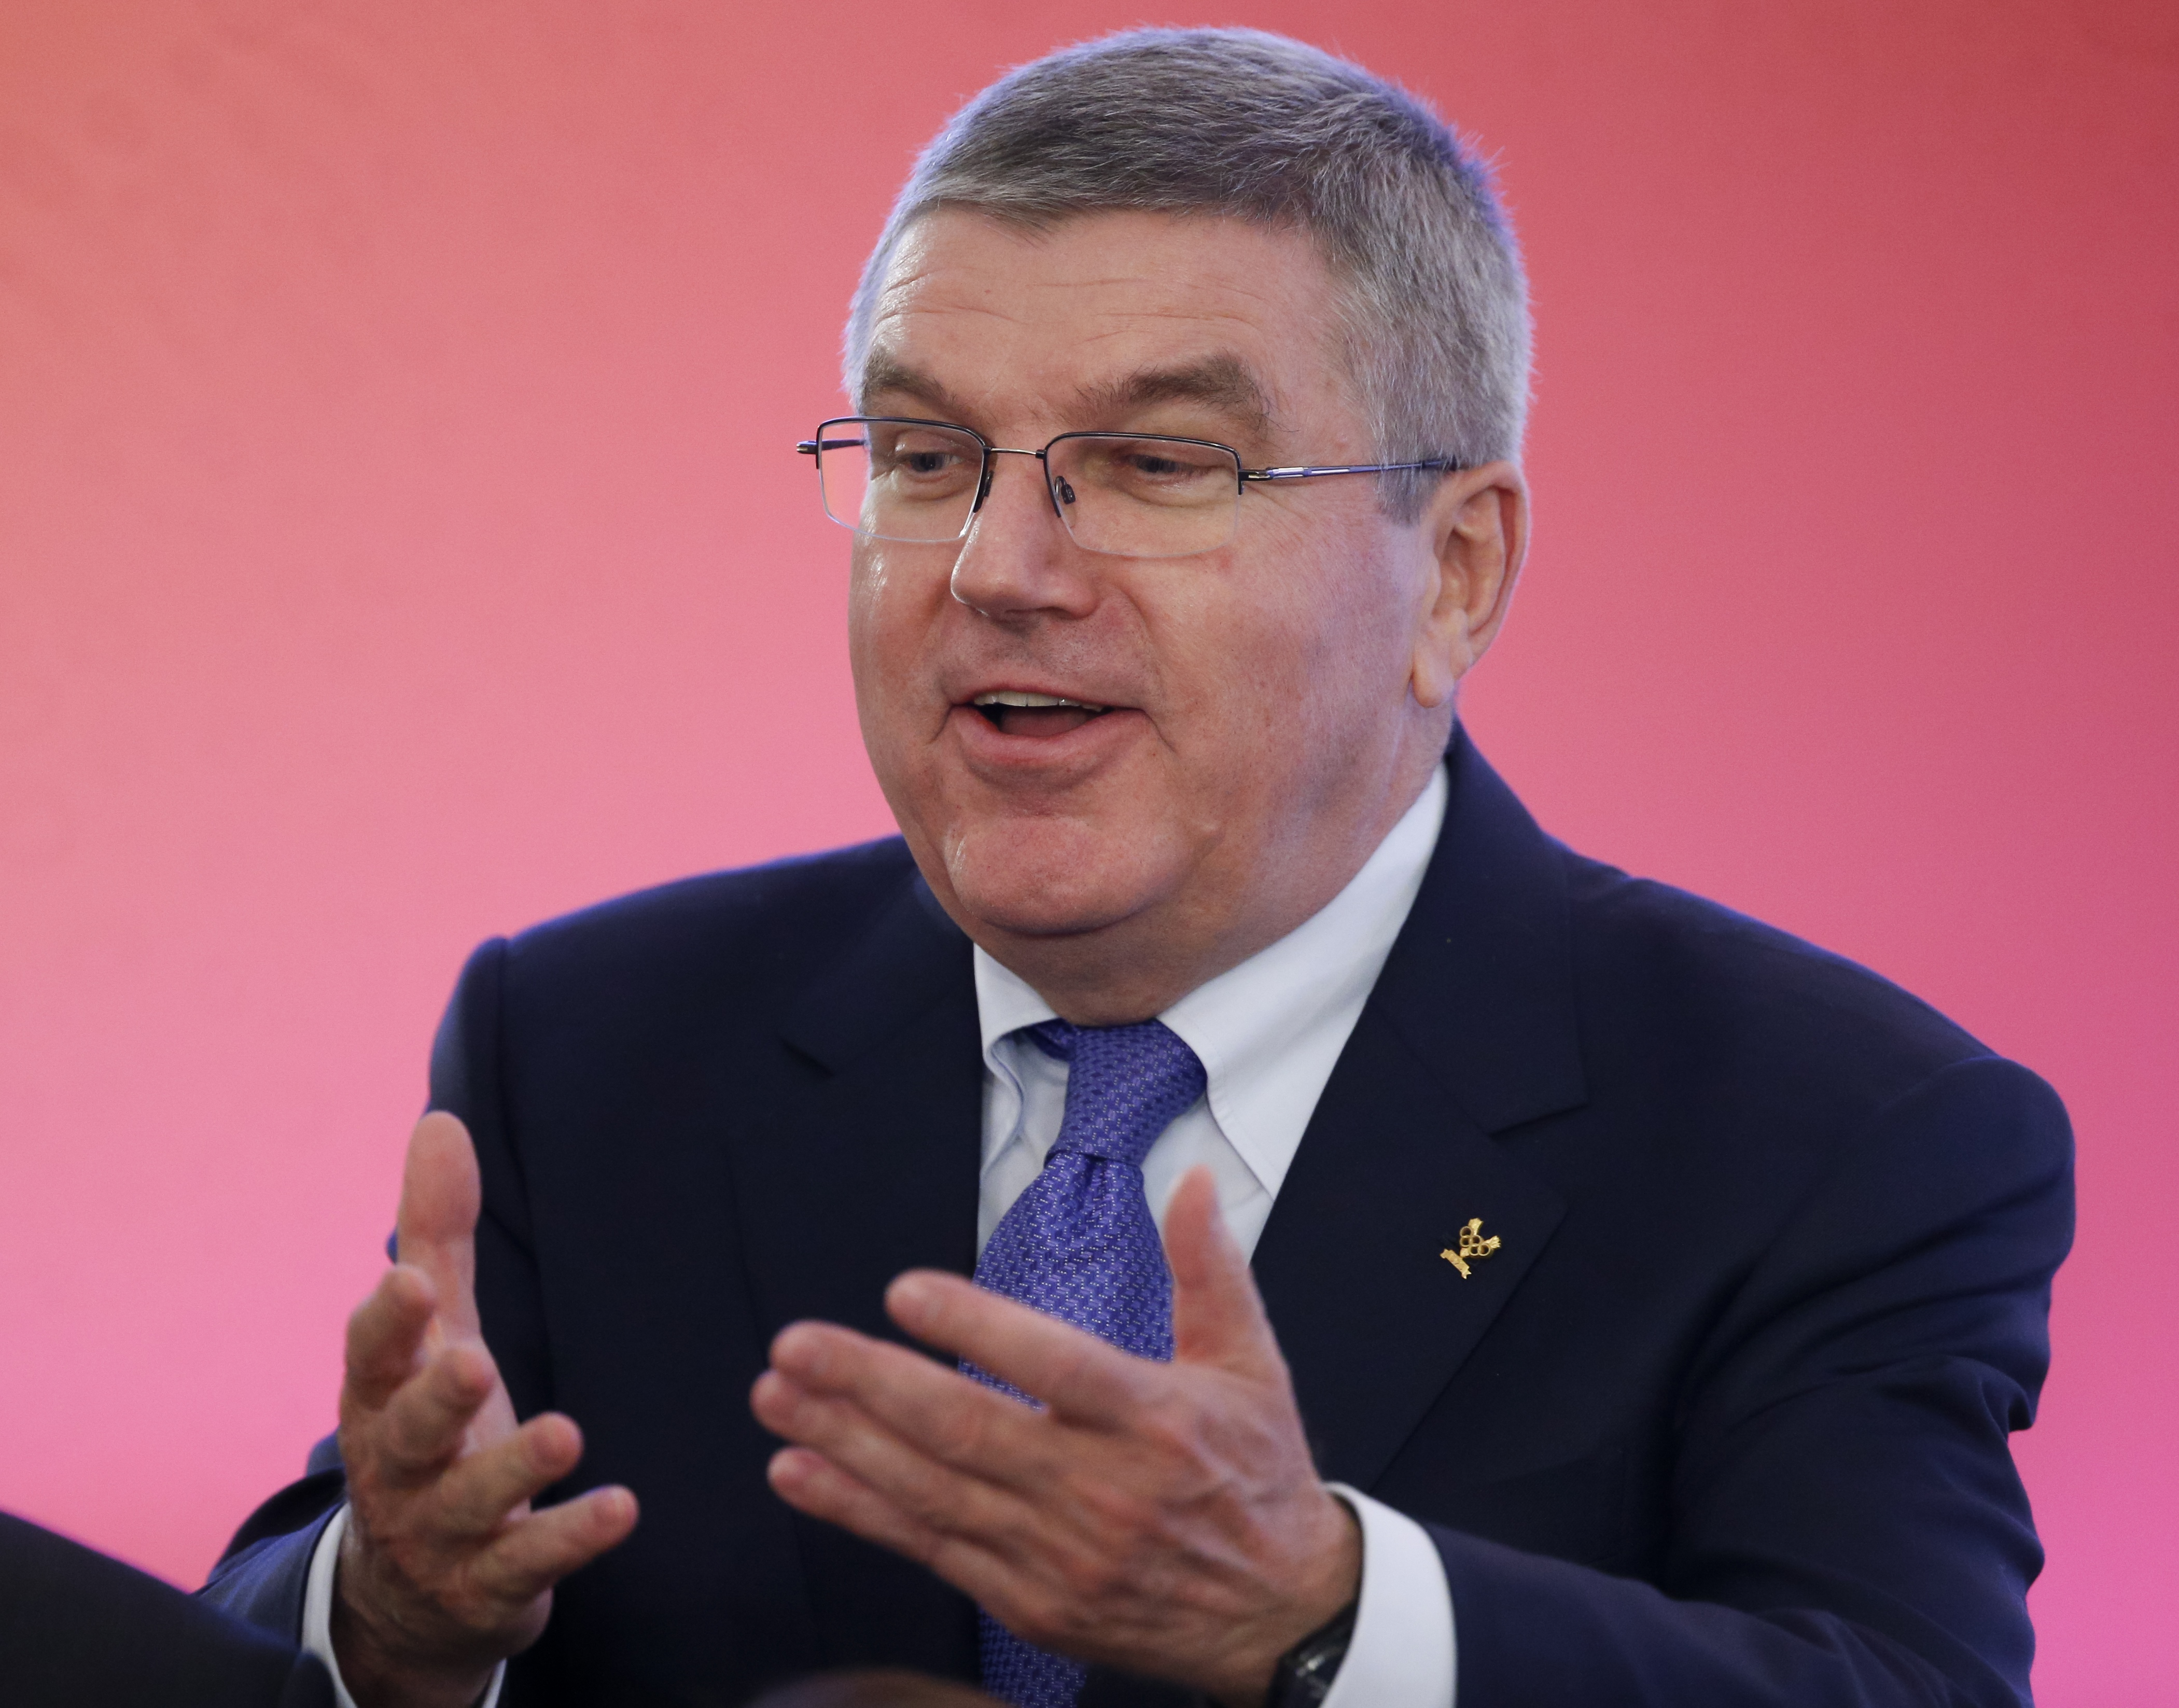 International Olympic Committee (IOC) President Thomas Bach attends  the World Olympians Forum in Moscow, Russia, Wednesday, Oct. 21, 2015. (AP Photo/Alexander Zemlianichenko, Pool)